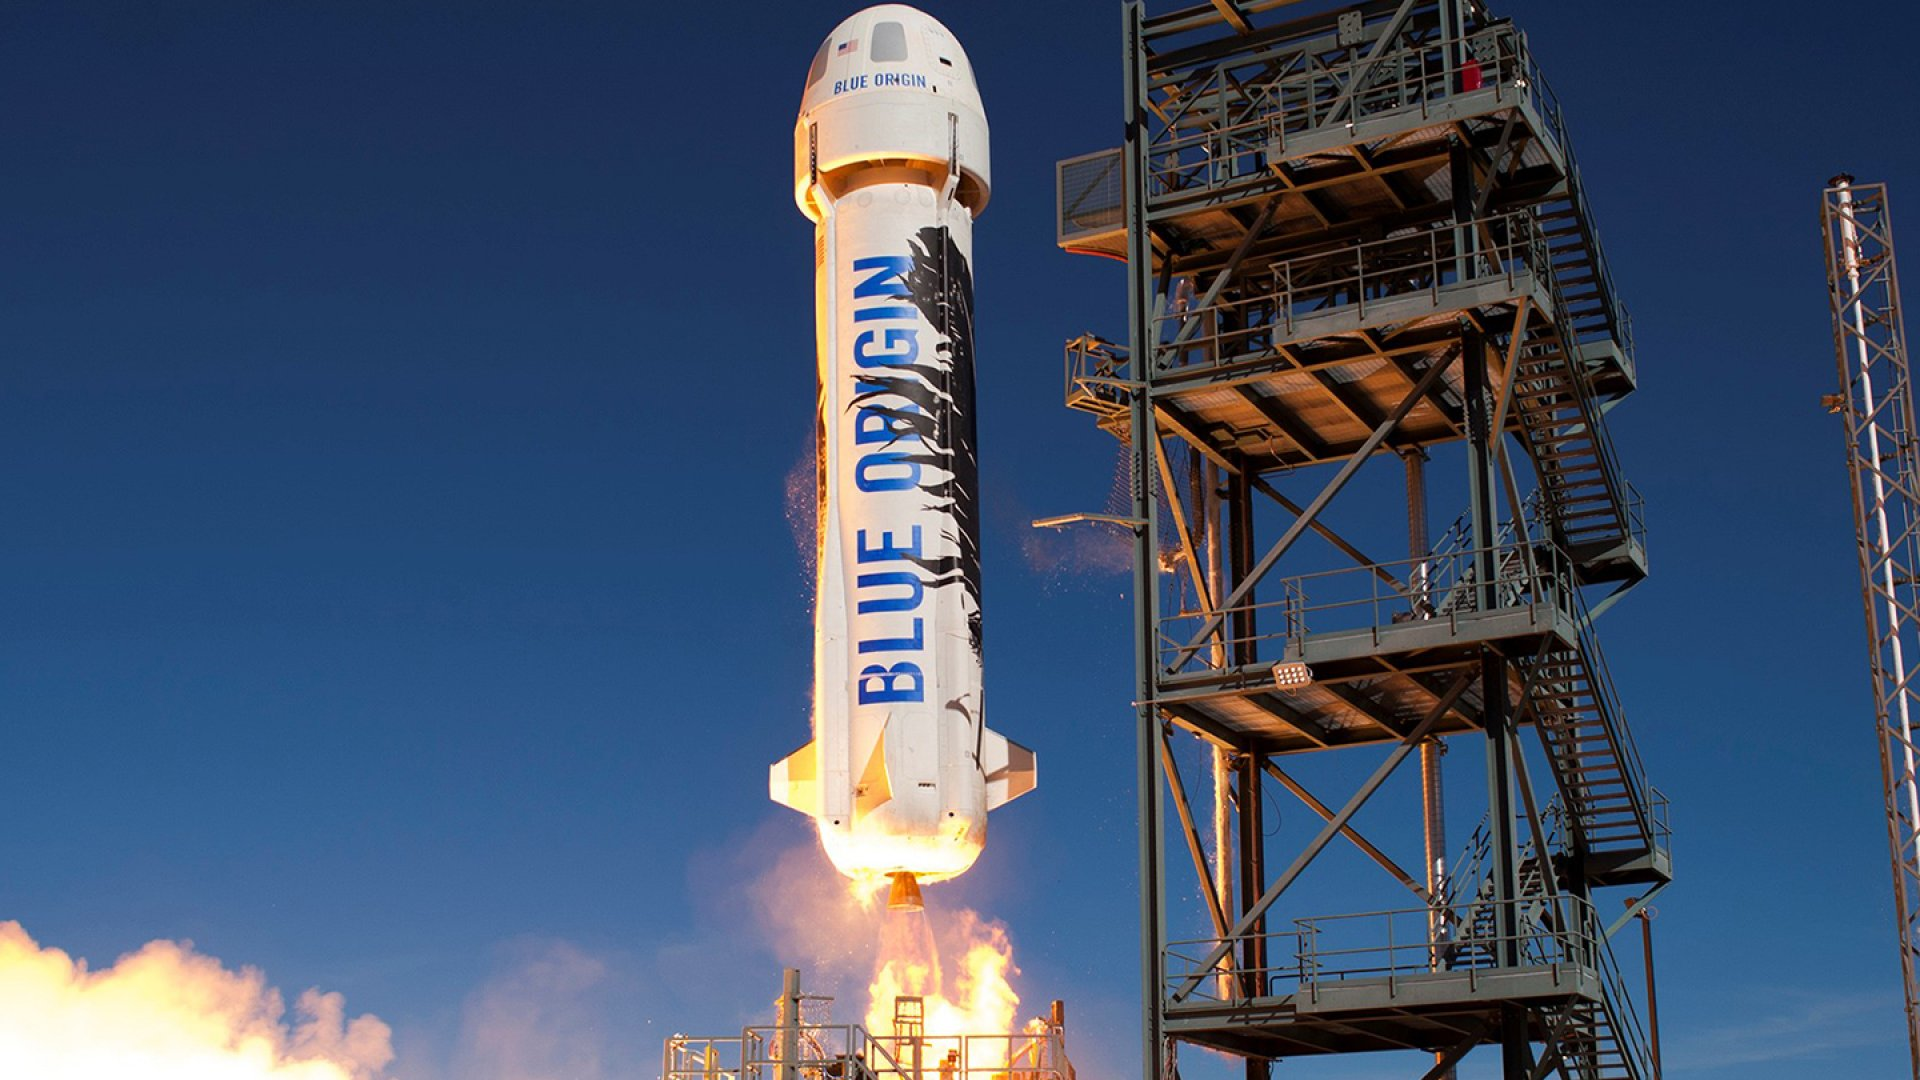 Blue Origin's New Shepard spacecraft launches from the company's West Texas launch site.